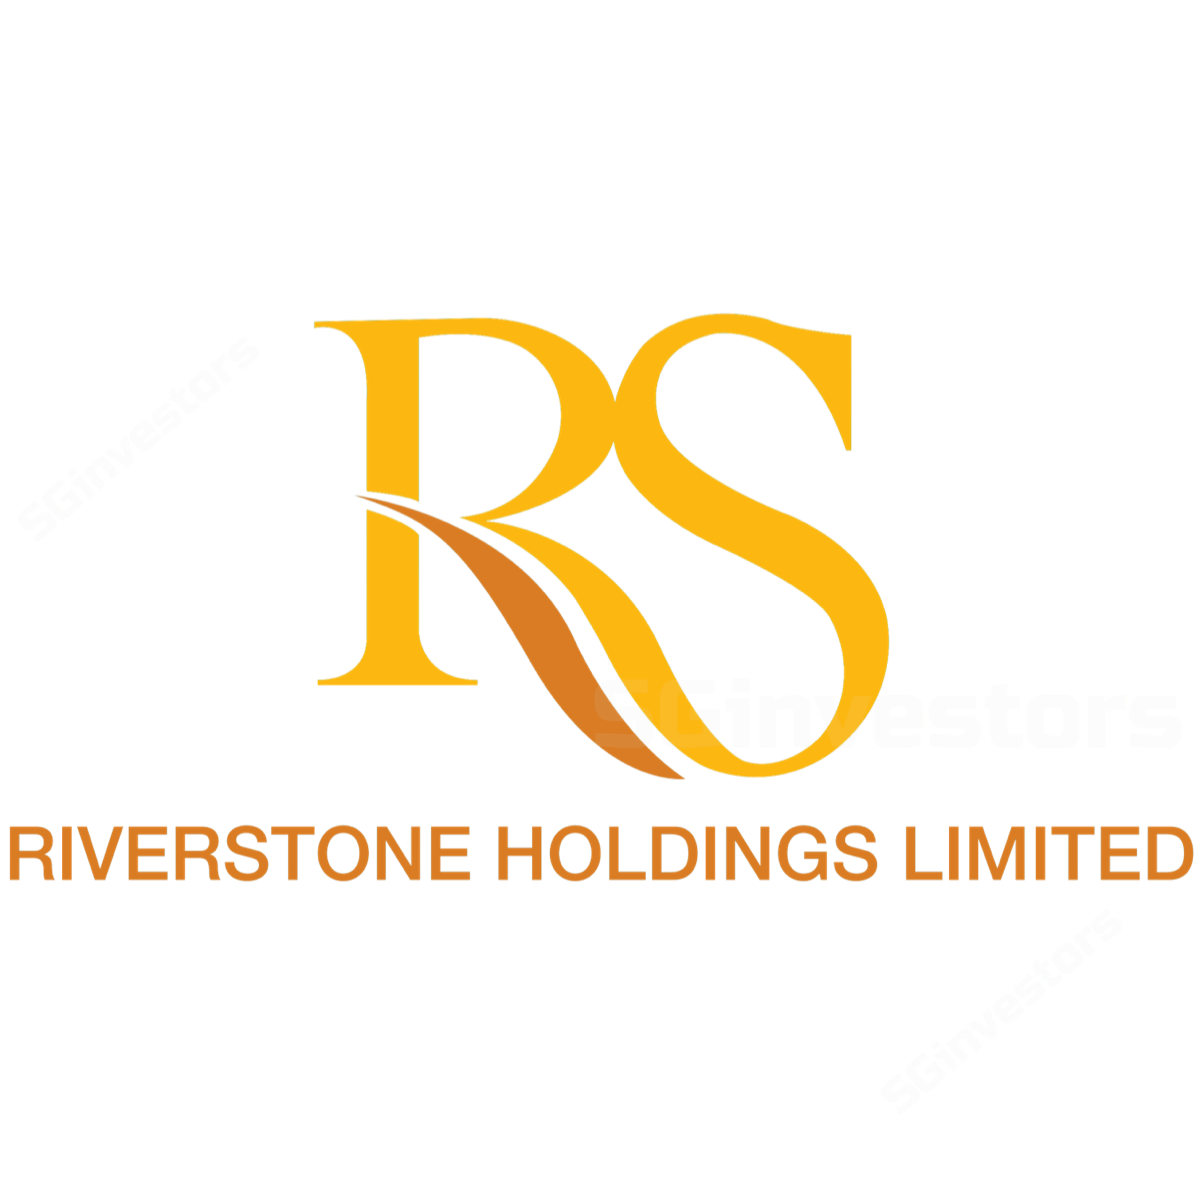 Riverstone Holdings (RSTON SP) - UOB Kay Hian 2017-08-04: Hold Until Greater Clarity